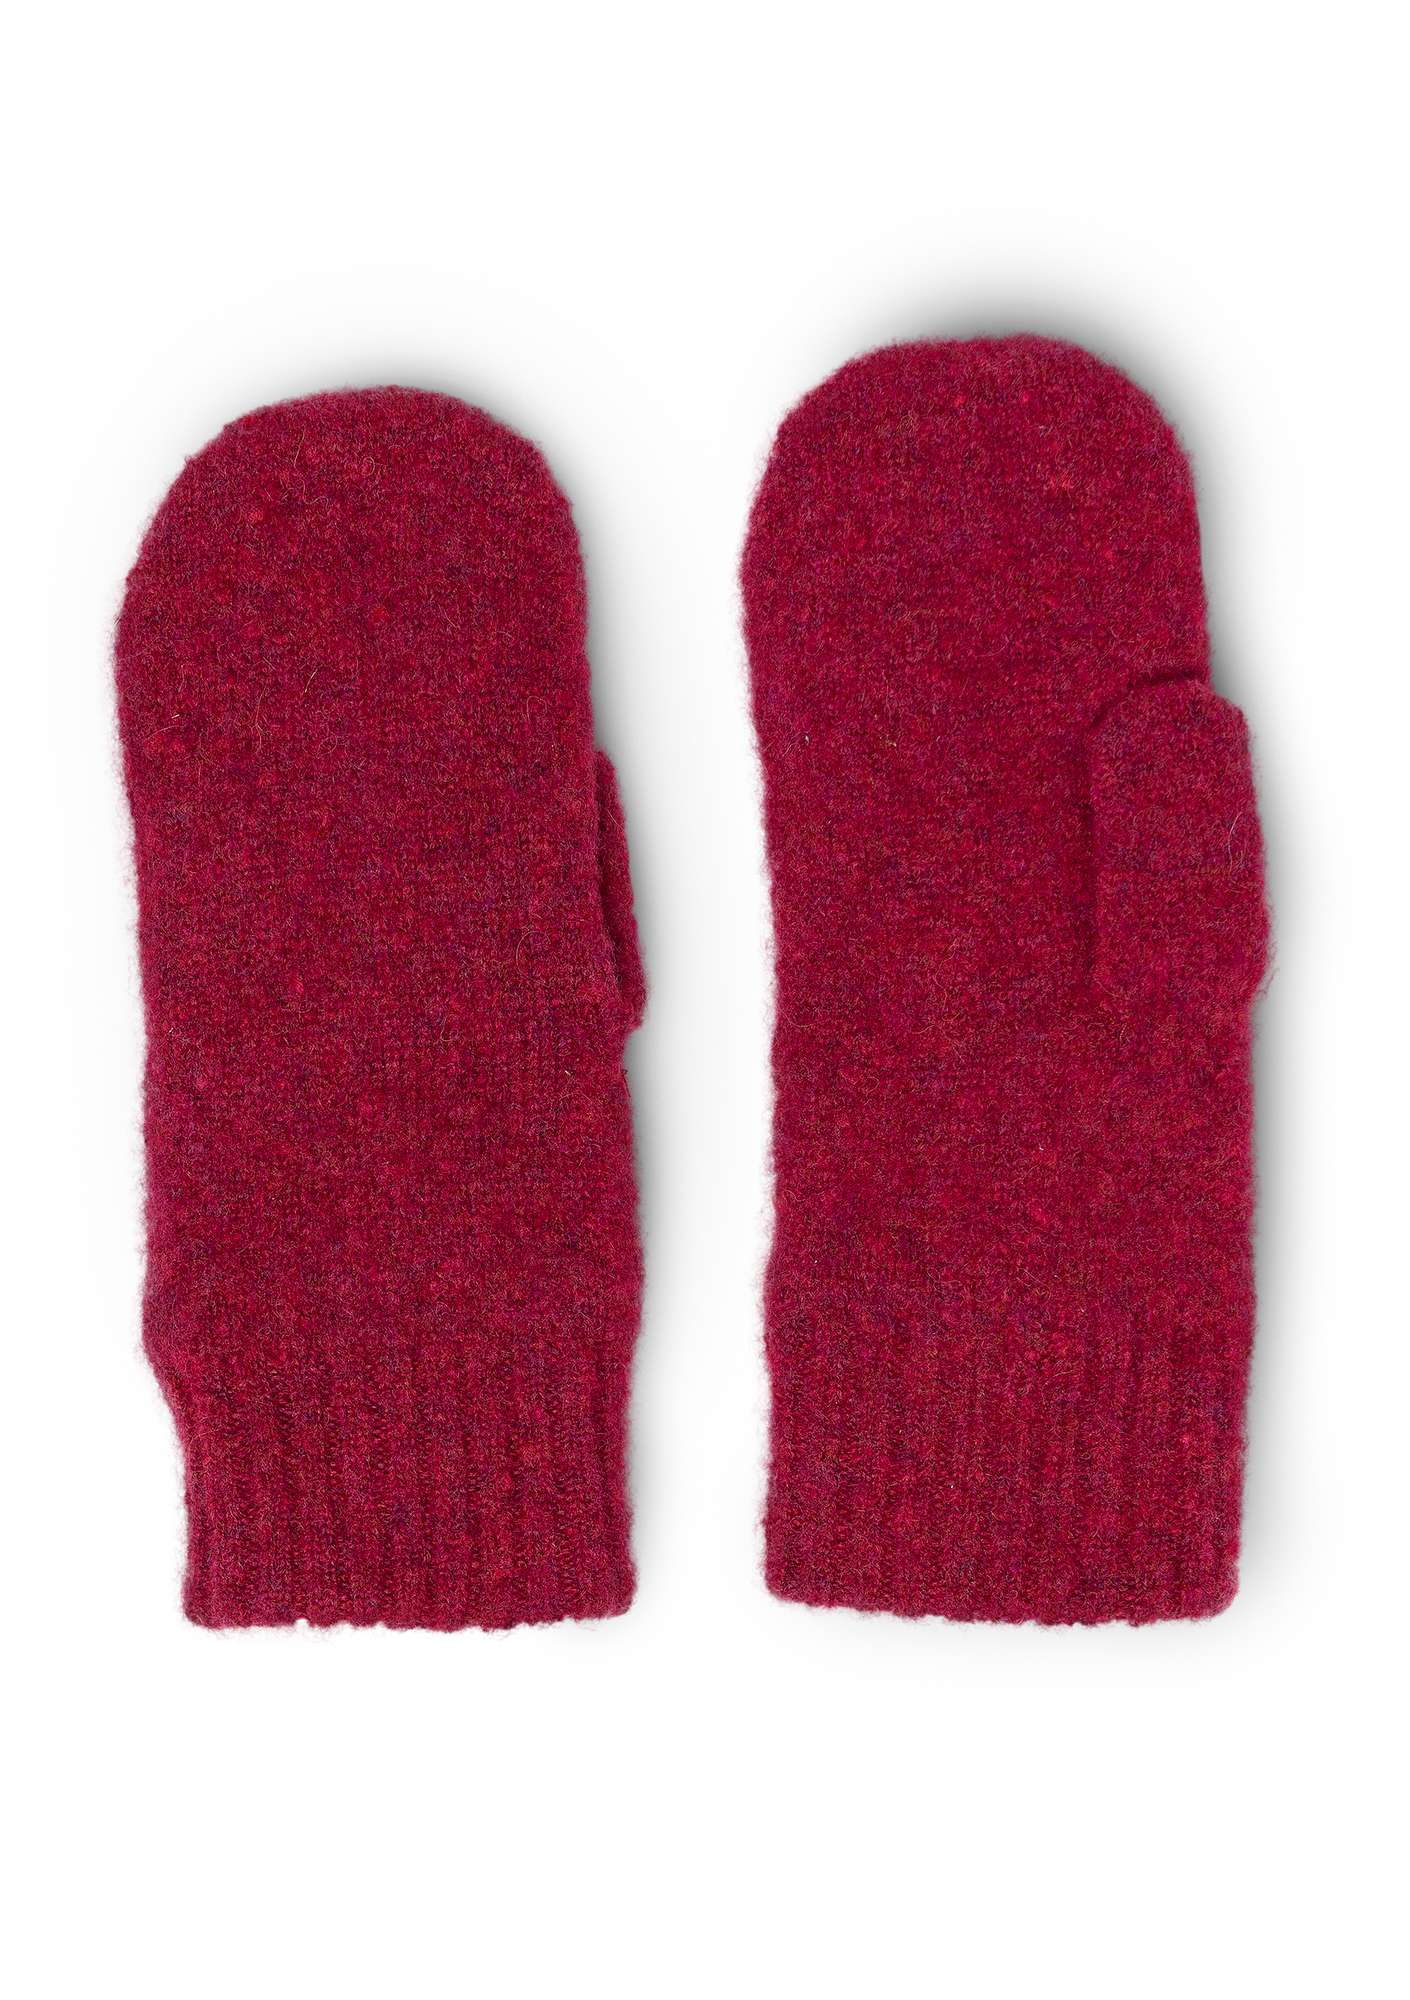 Knit mittens in a recycled cashmere blend dark hibiscus